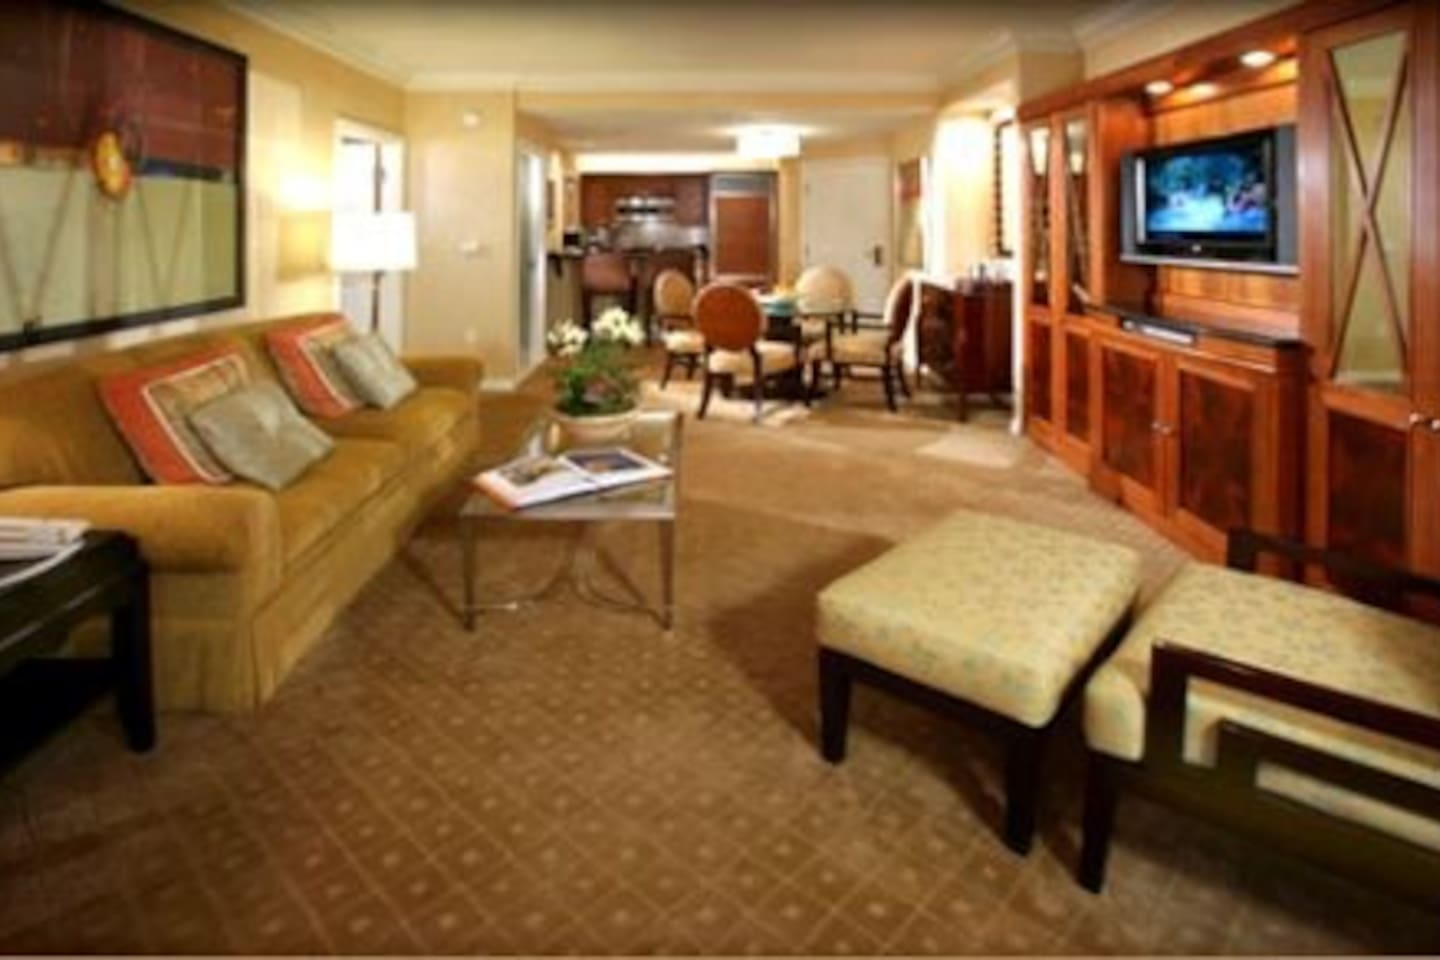 MGM signature hotel 1 bedroom 2 full bathroom   Condominiums for Rent in  Las Vegas  Nevada  United States. MGM signature hotel 1 bedroom 2 full bathroom   Condominiums for